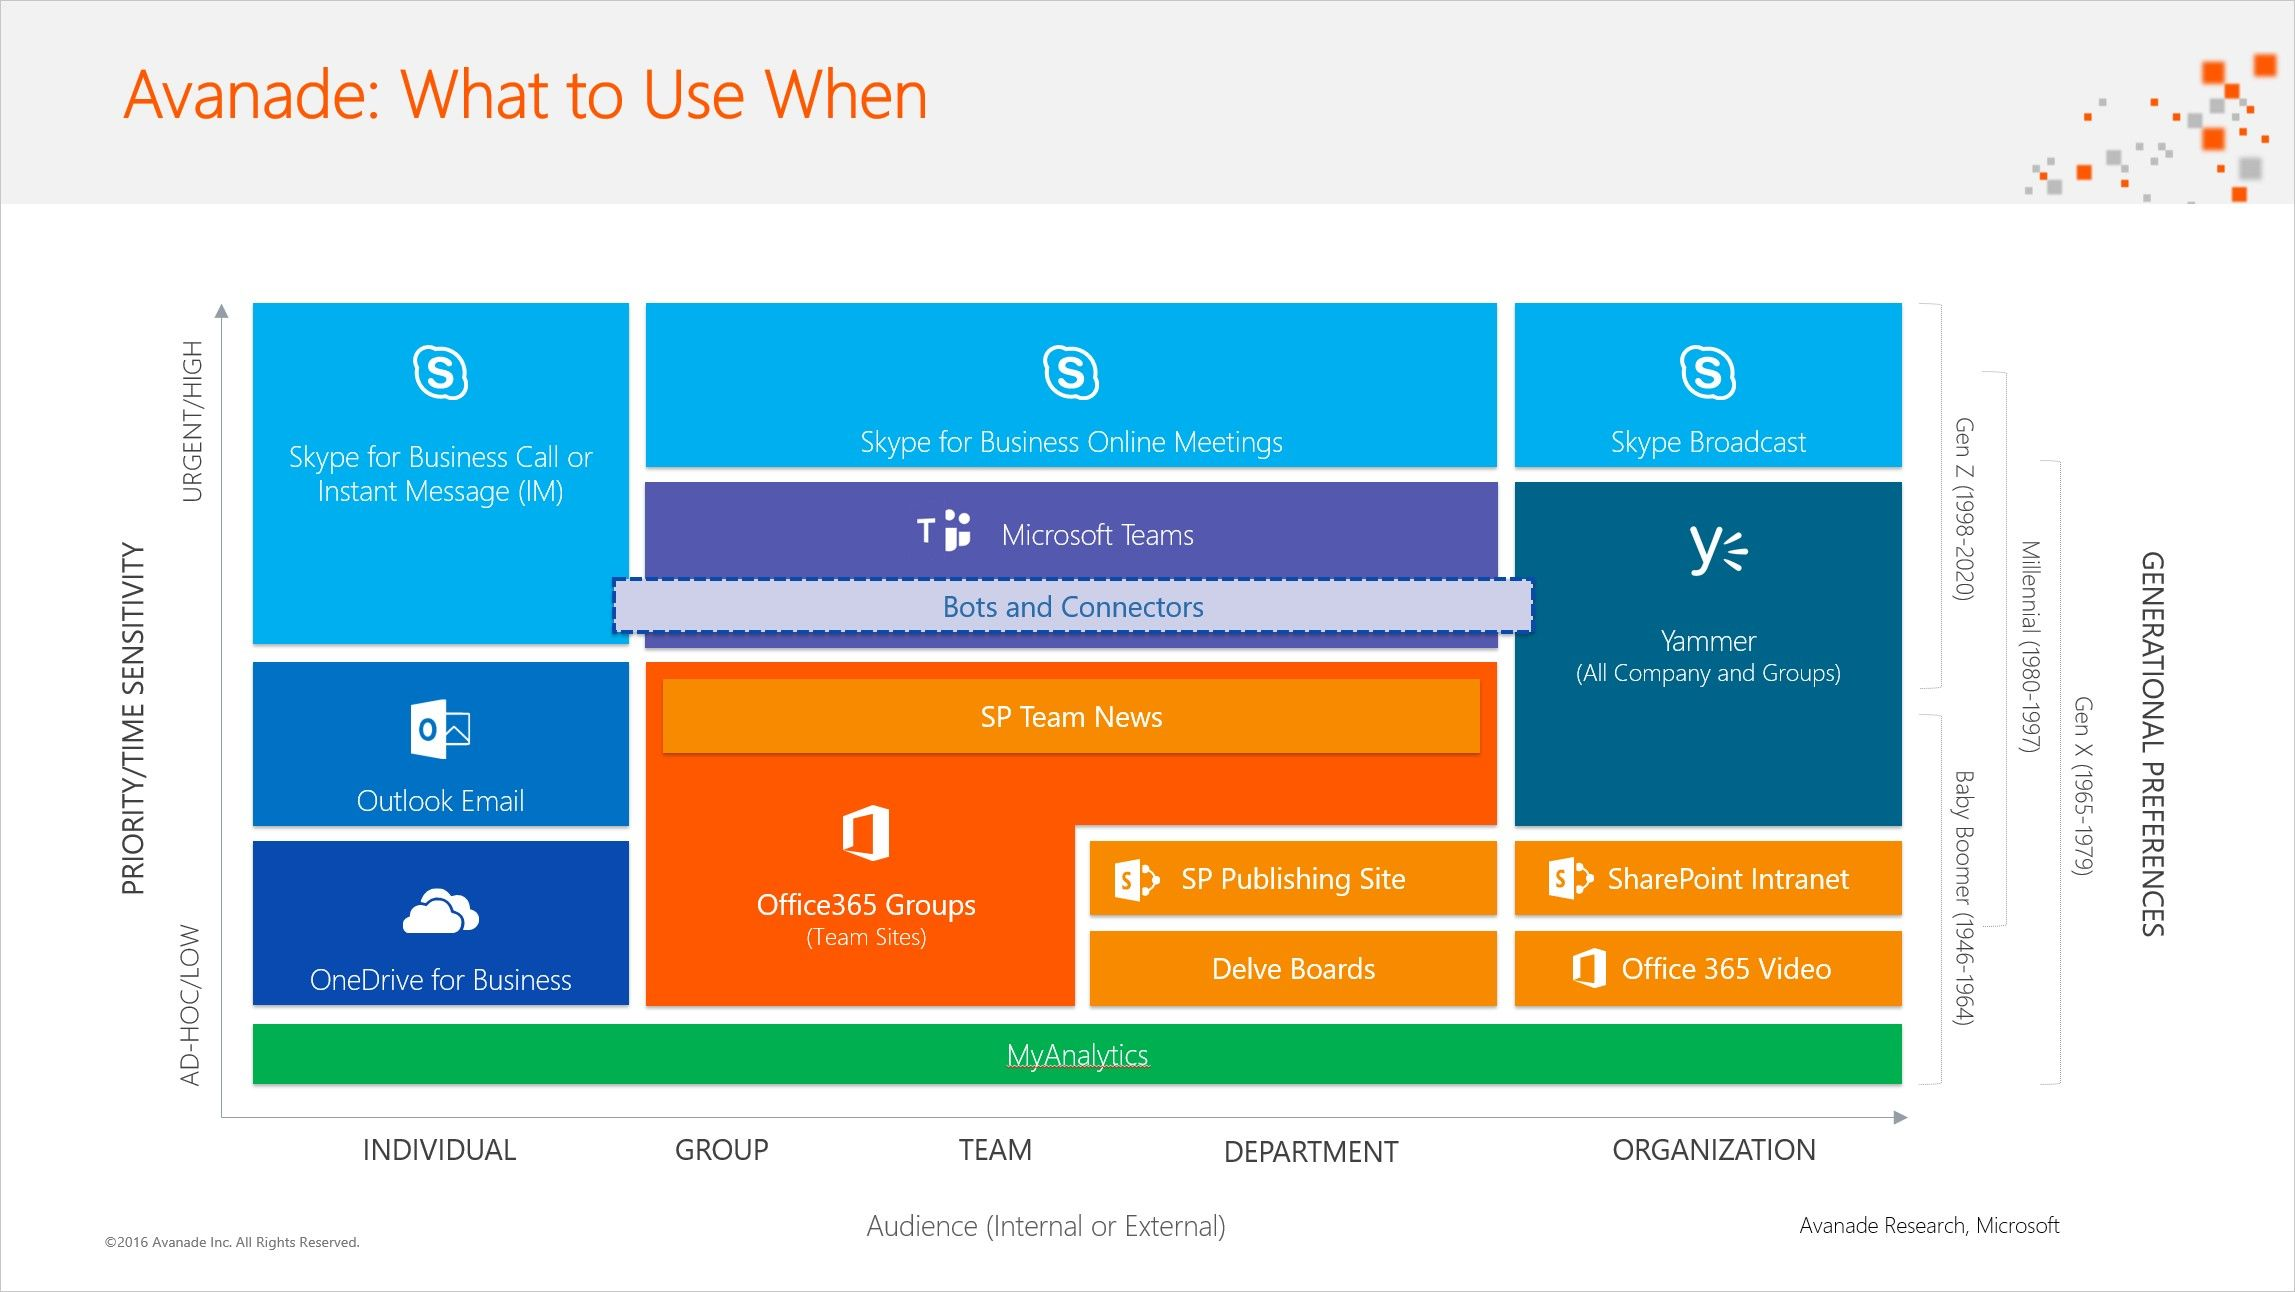 What Office 365 service to Use Microsoft Teams